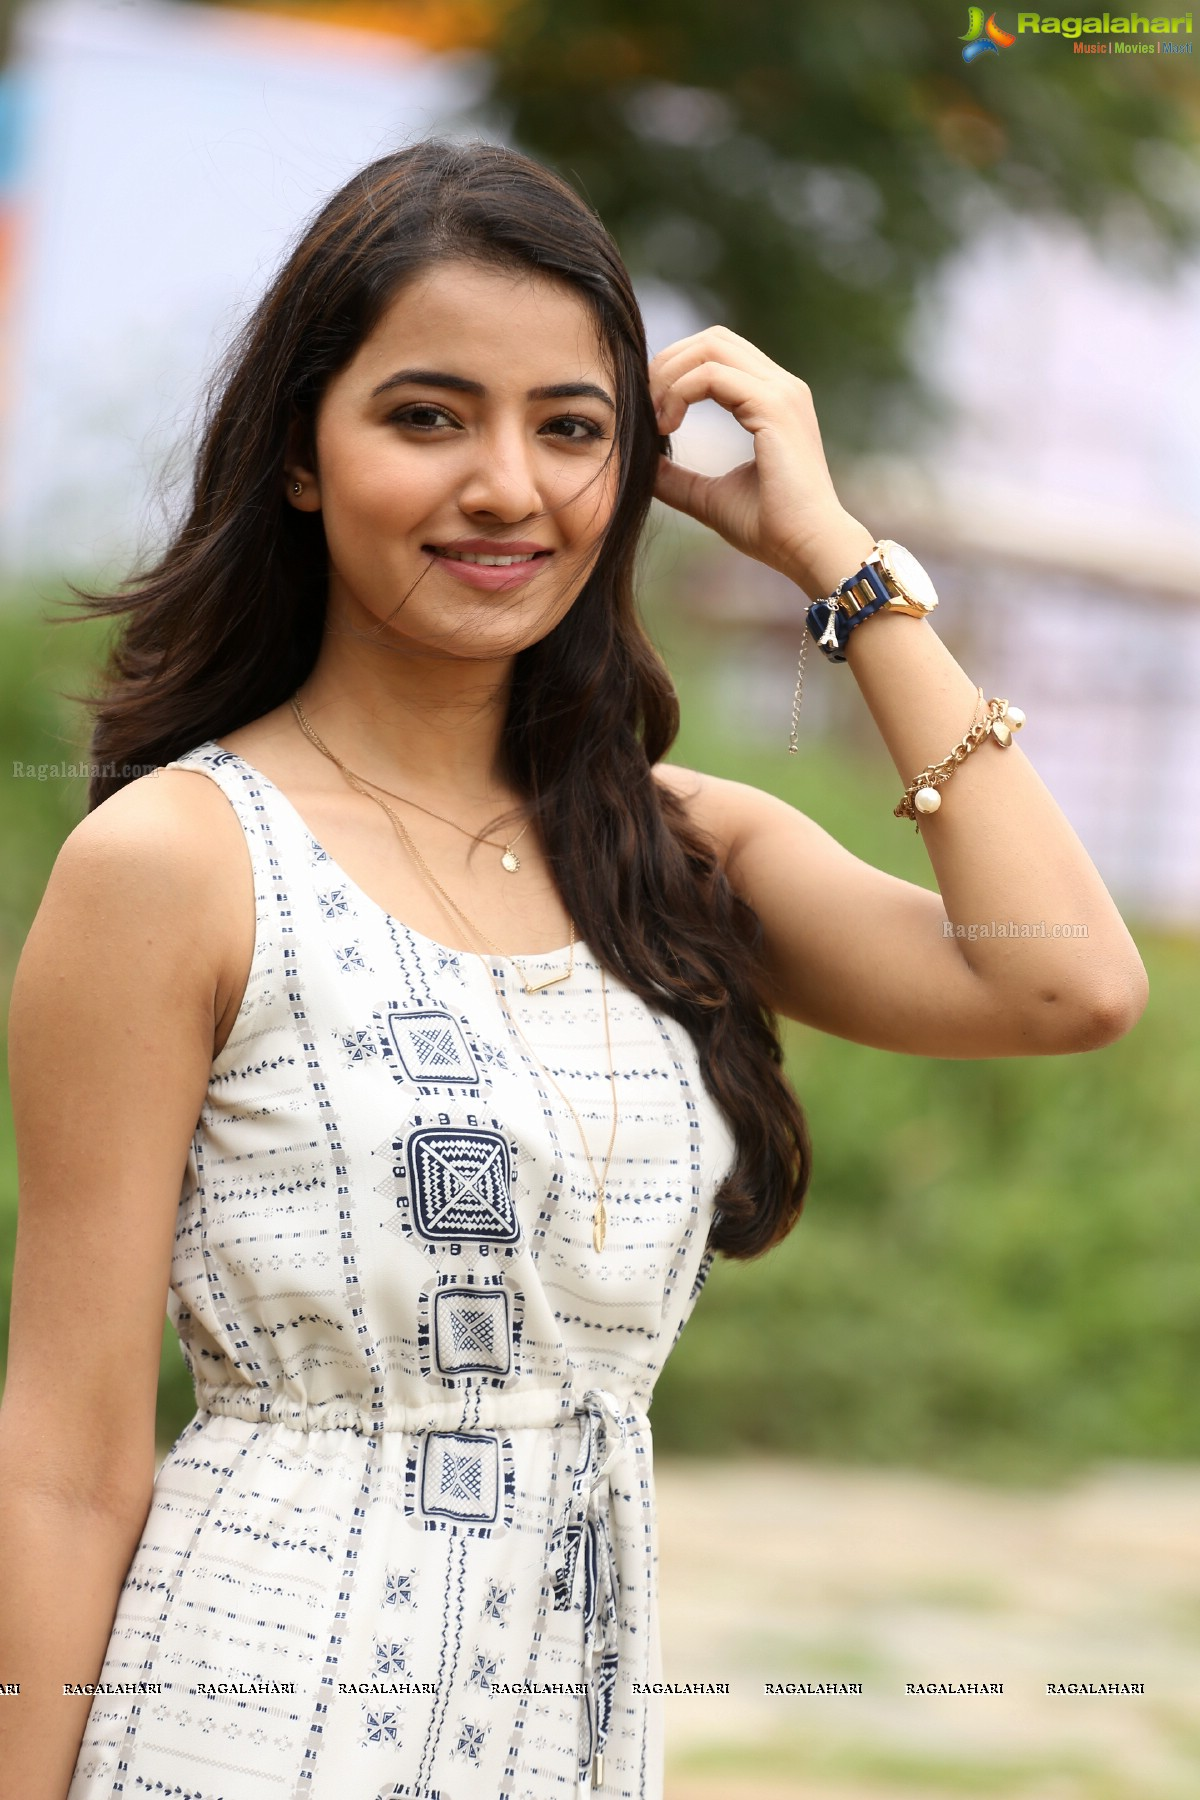 Actor surya interview in bangalore dating 4